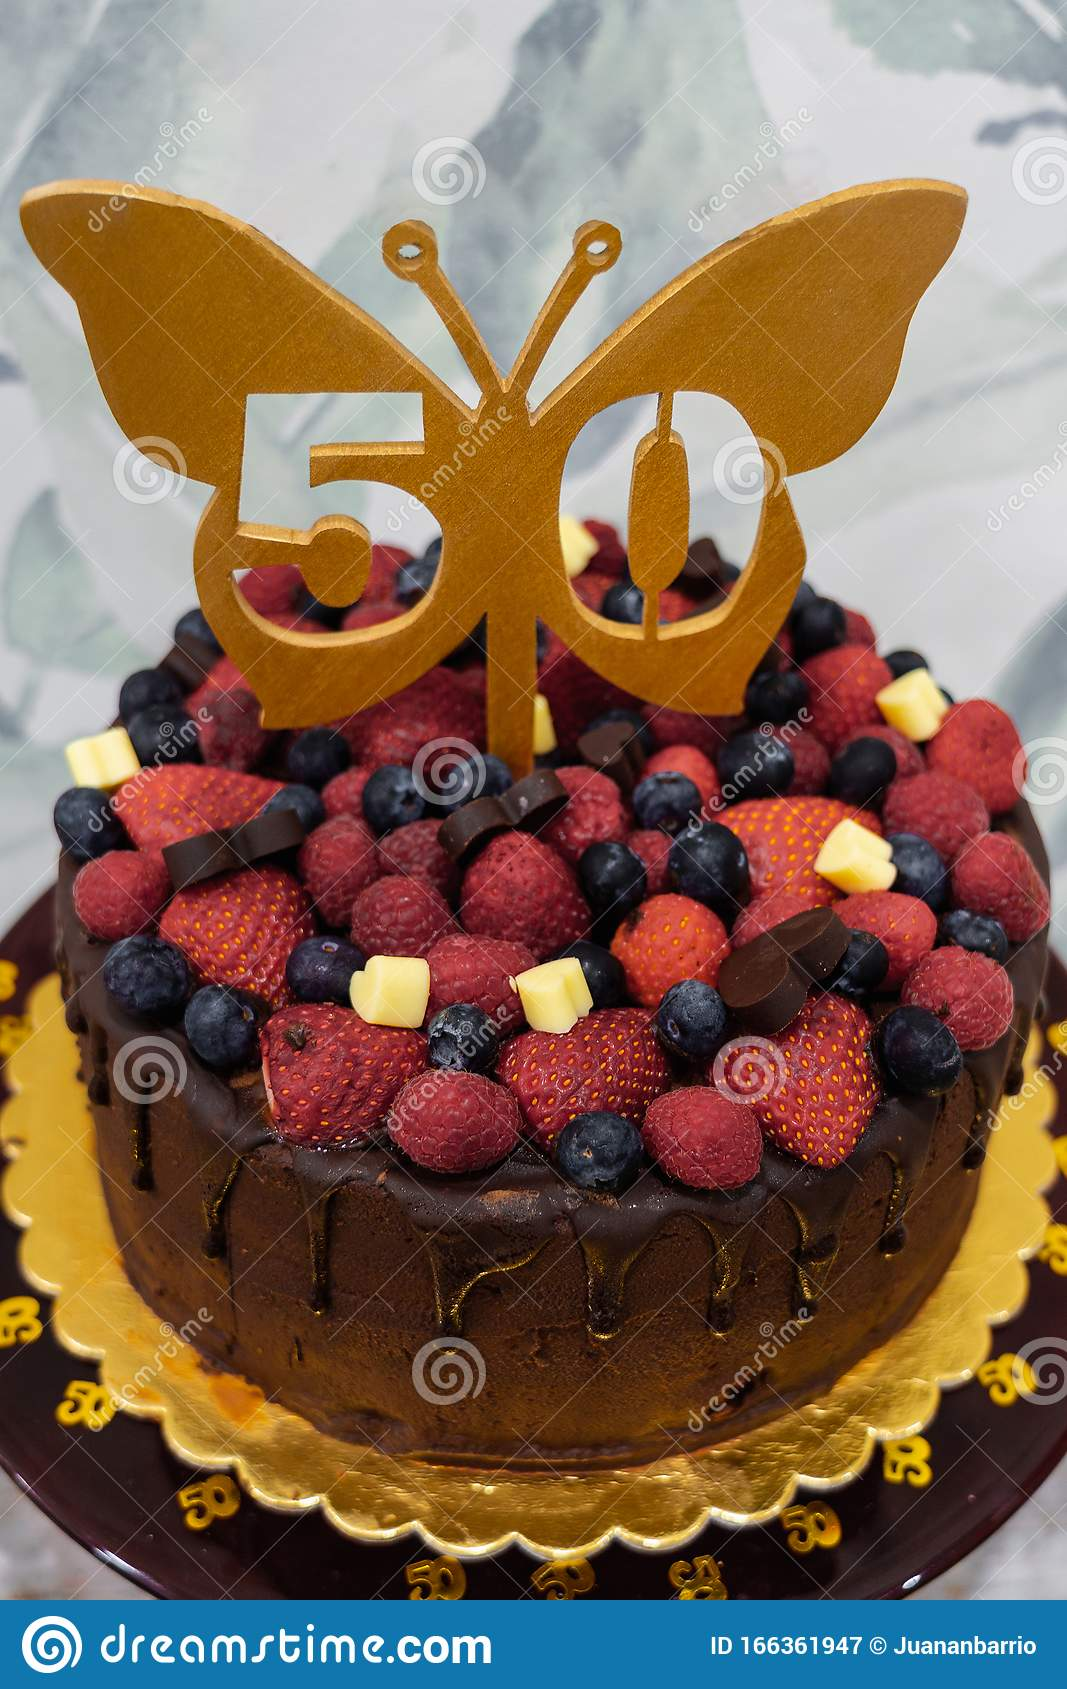 123 50th Birthday Cake Photos Free Royalty Free Stock Photos From Dreamstime